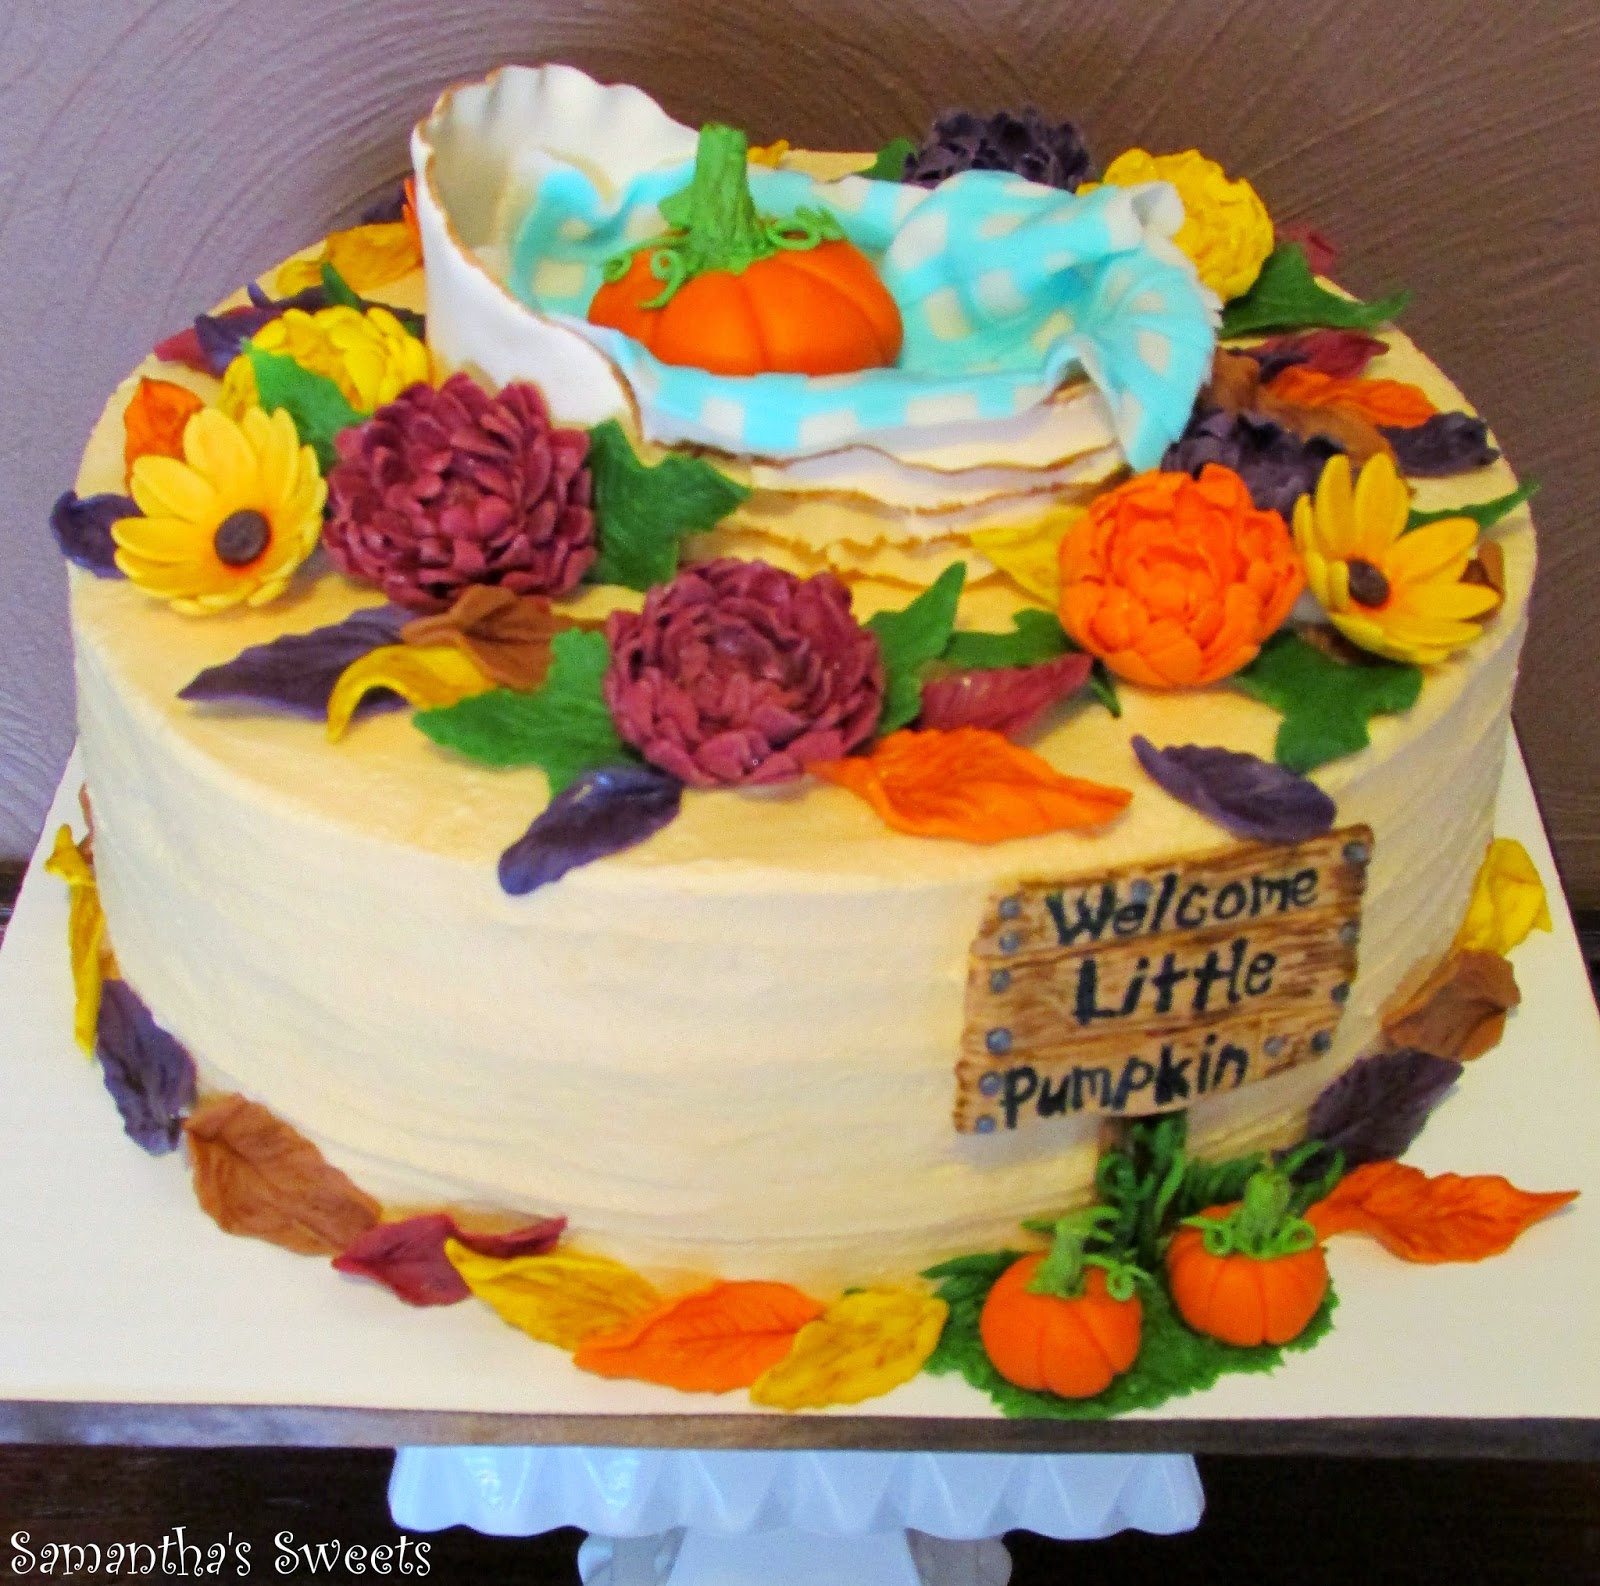 Parties With Cake Welcome Little Pumpkin Baby Shower Cakes